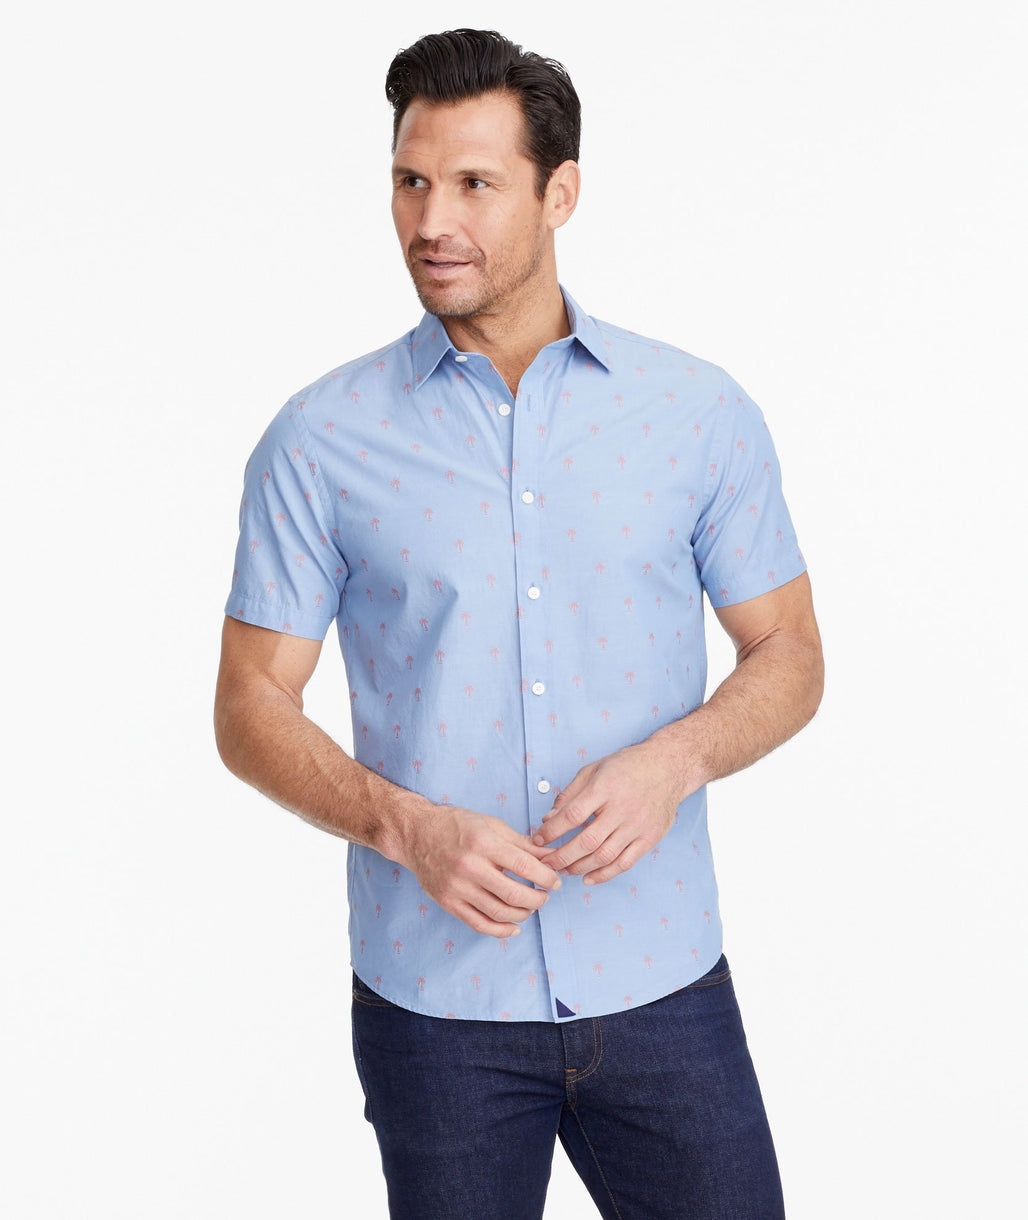 A model wearing a Light Blue Classic Cotton Short-Sleeve Hamilton Shirt